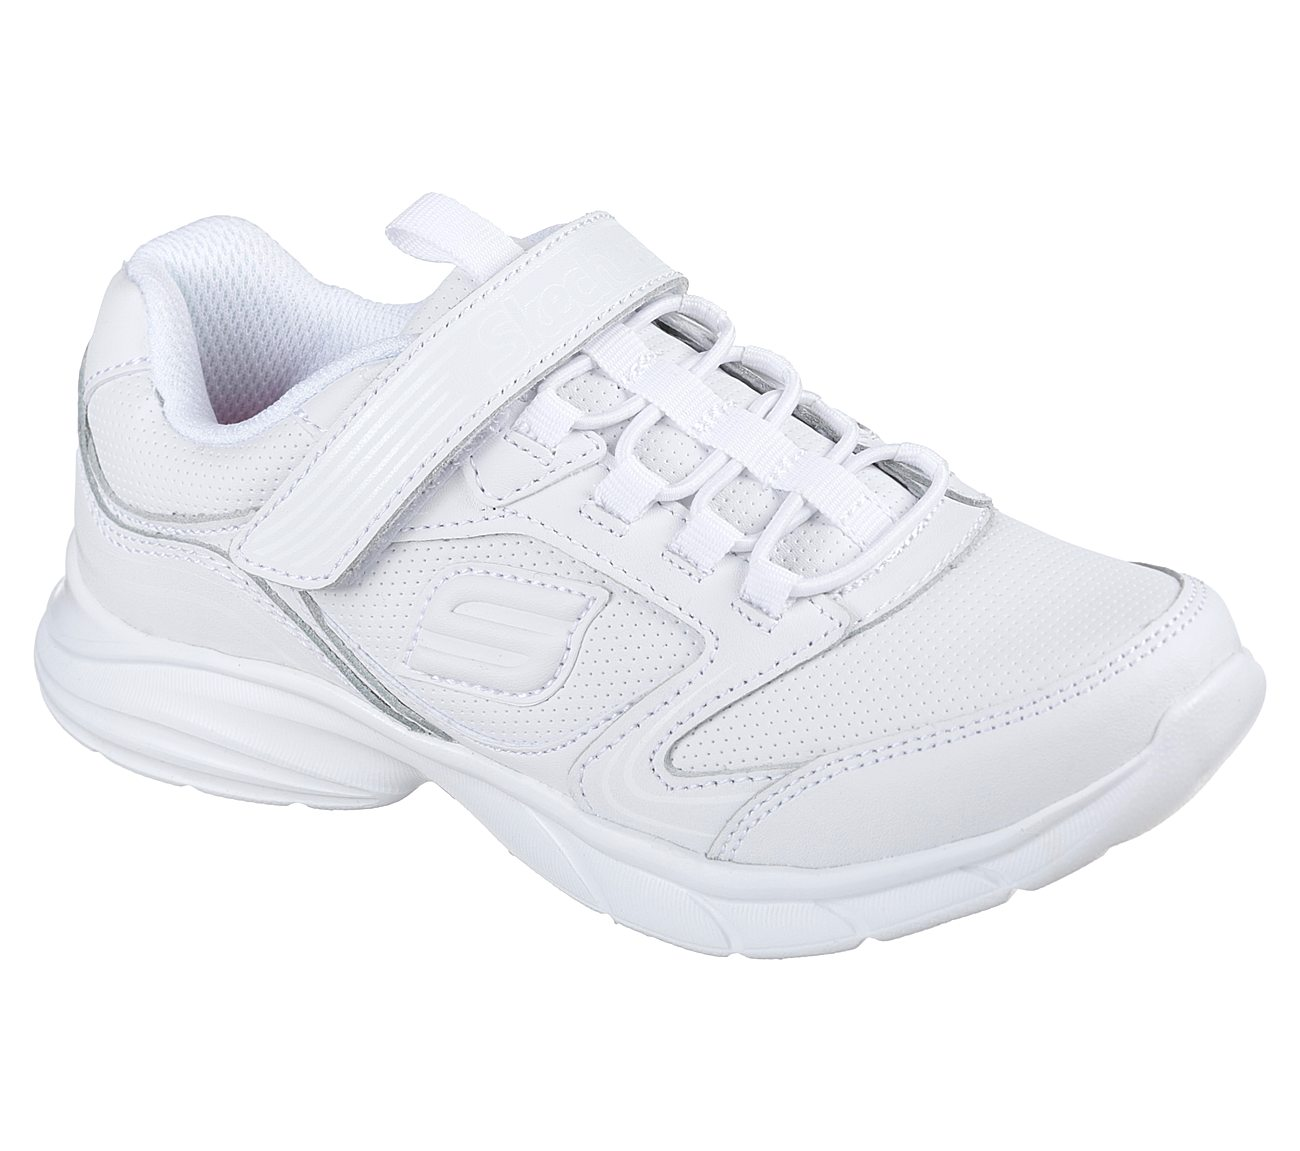 Spirit Sprintz SKECHERS Sport Shoes